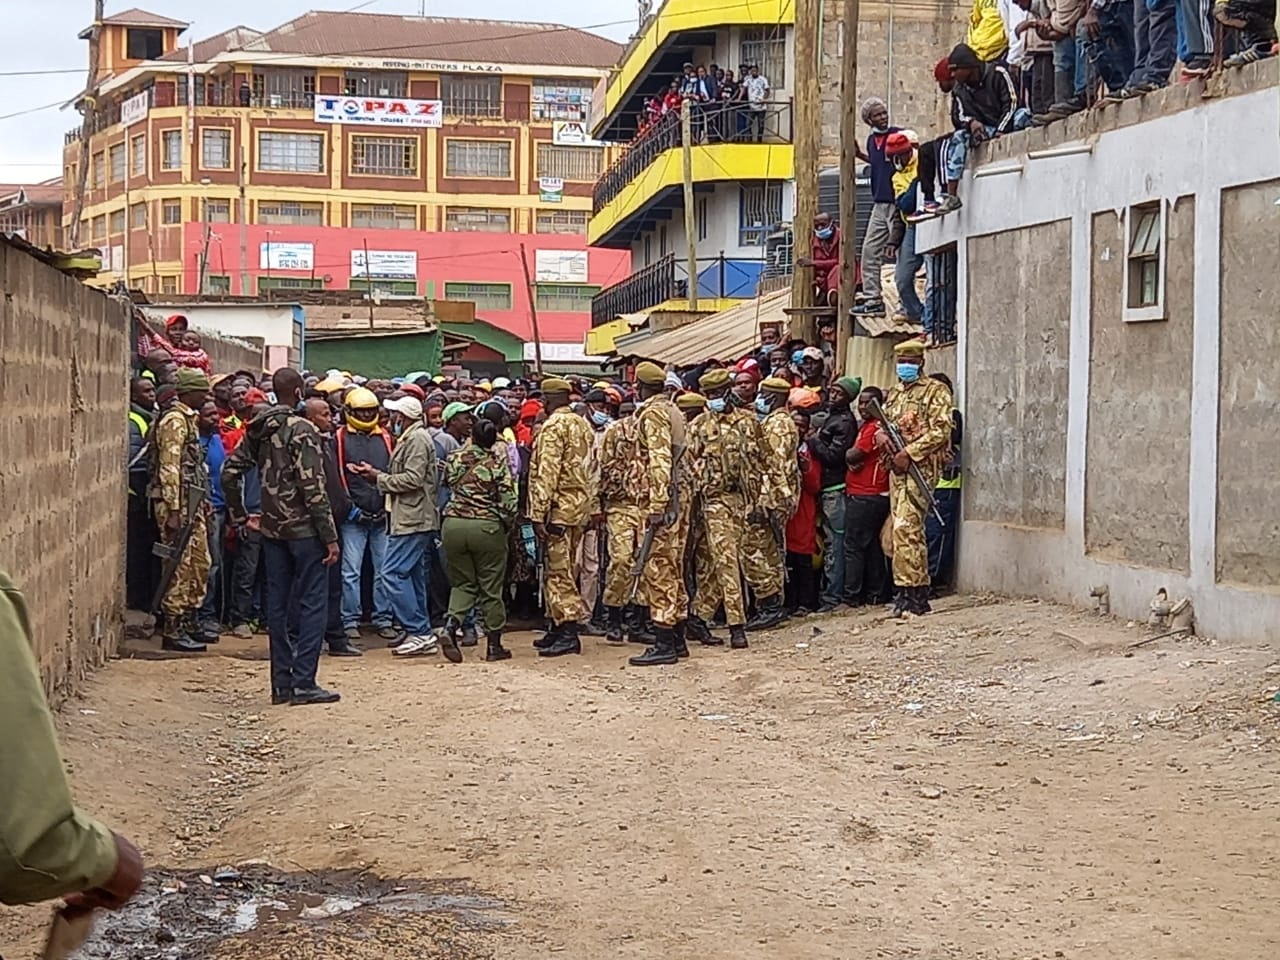 Kenyan wildlife rangers and veterinarians control the crowd of people who gathered to see the lion that had wandered into a residential area in Ongata Rongai, in the outskirts of Nairobi, Kenya July 28, 2021. Kenya Wildlife Service/Handout via REUTERS